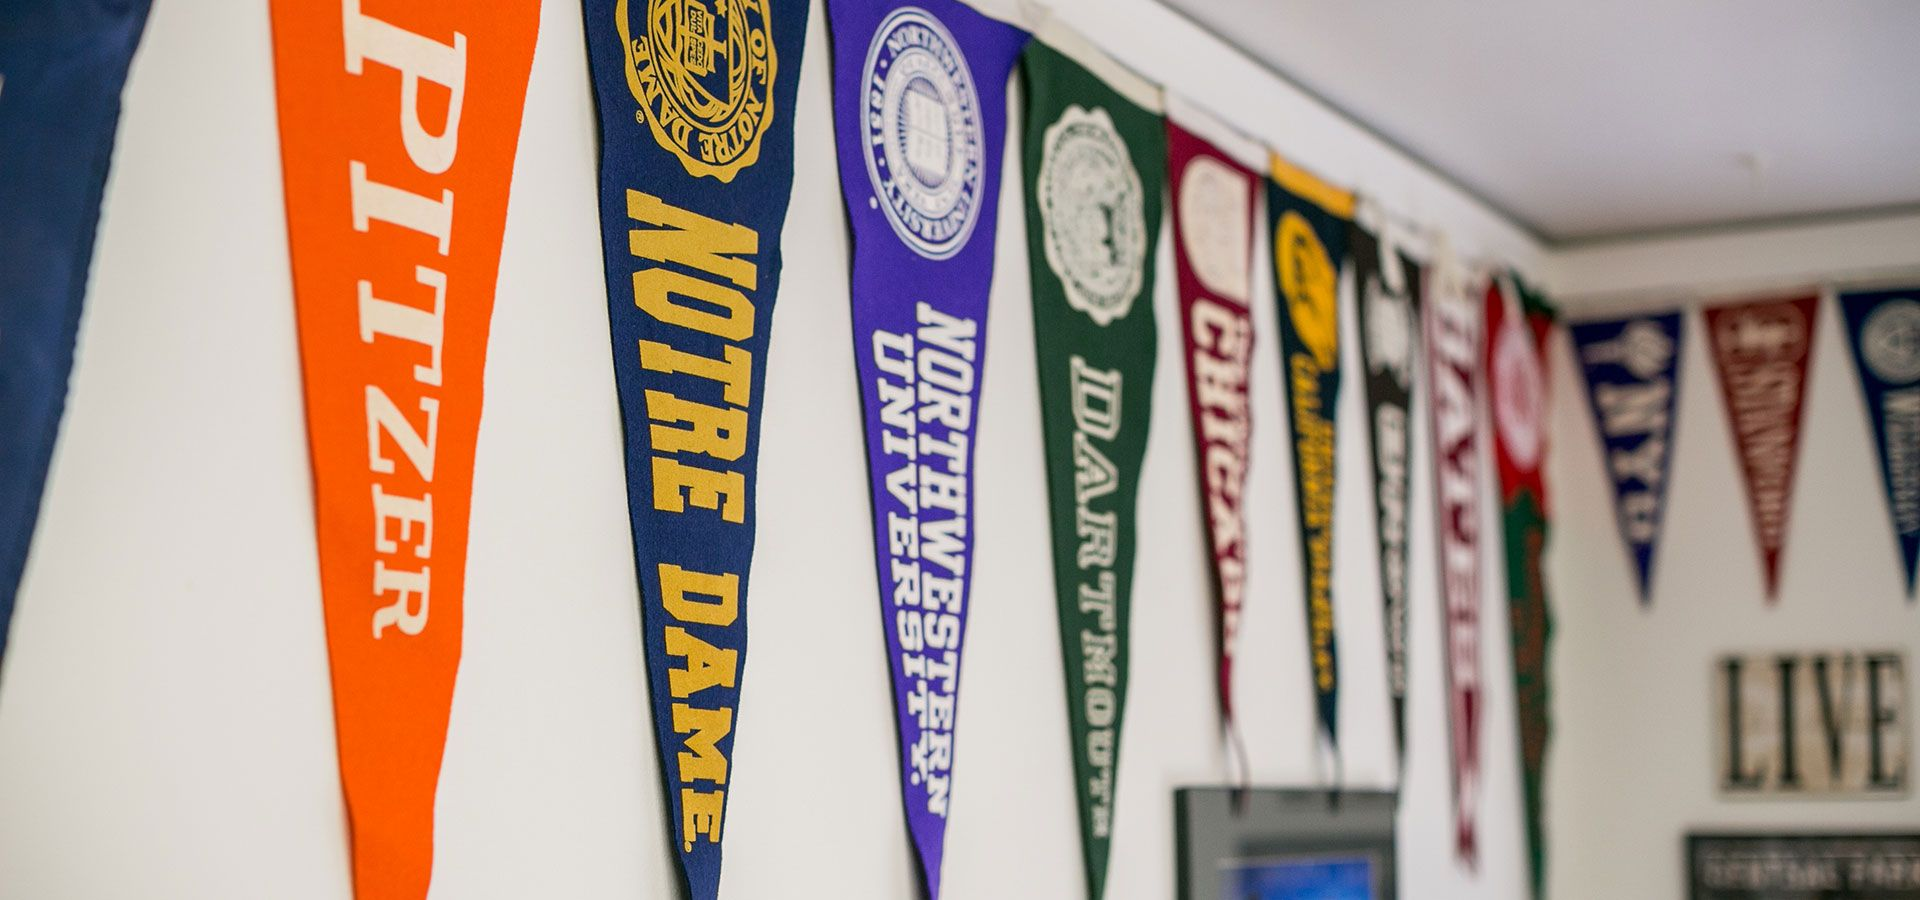 College pennants hanging on a wall